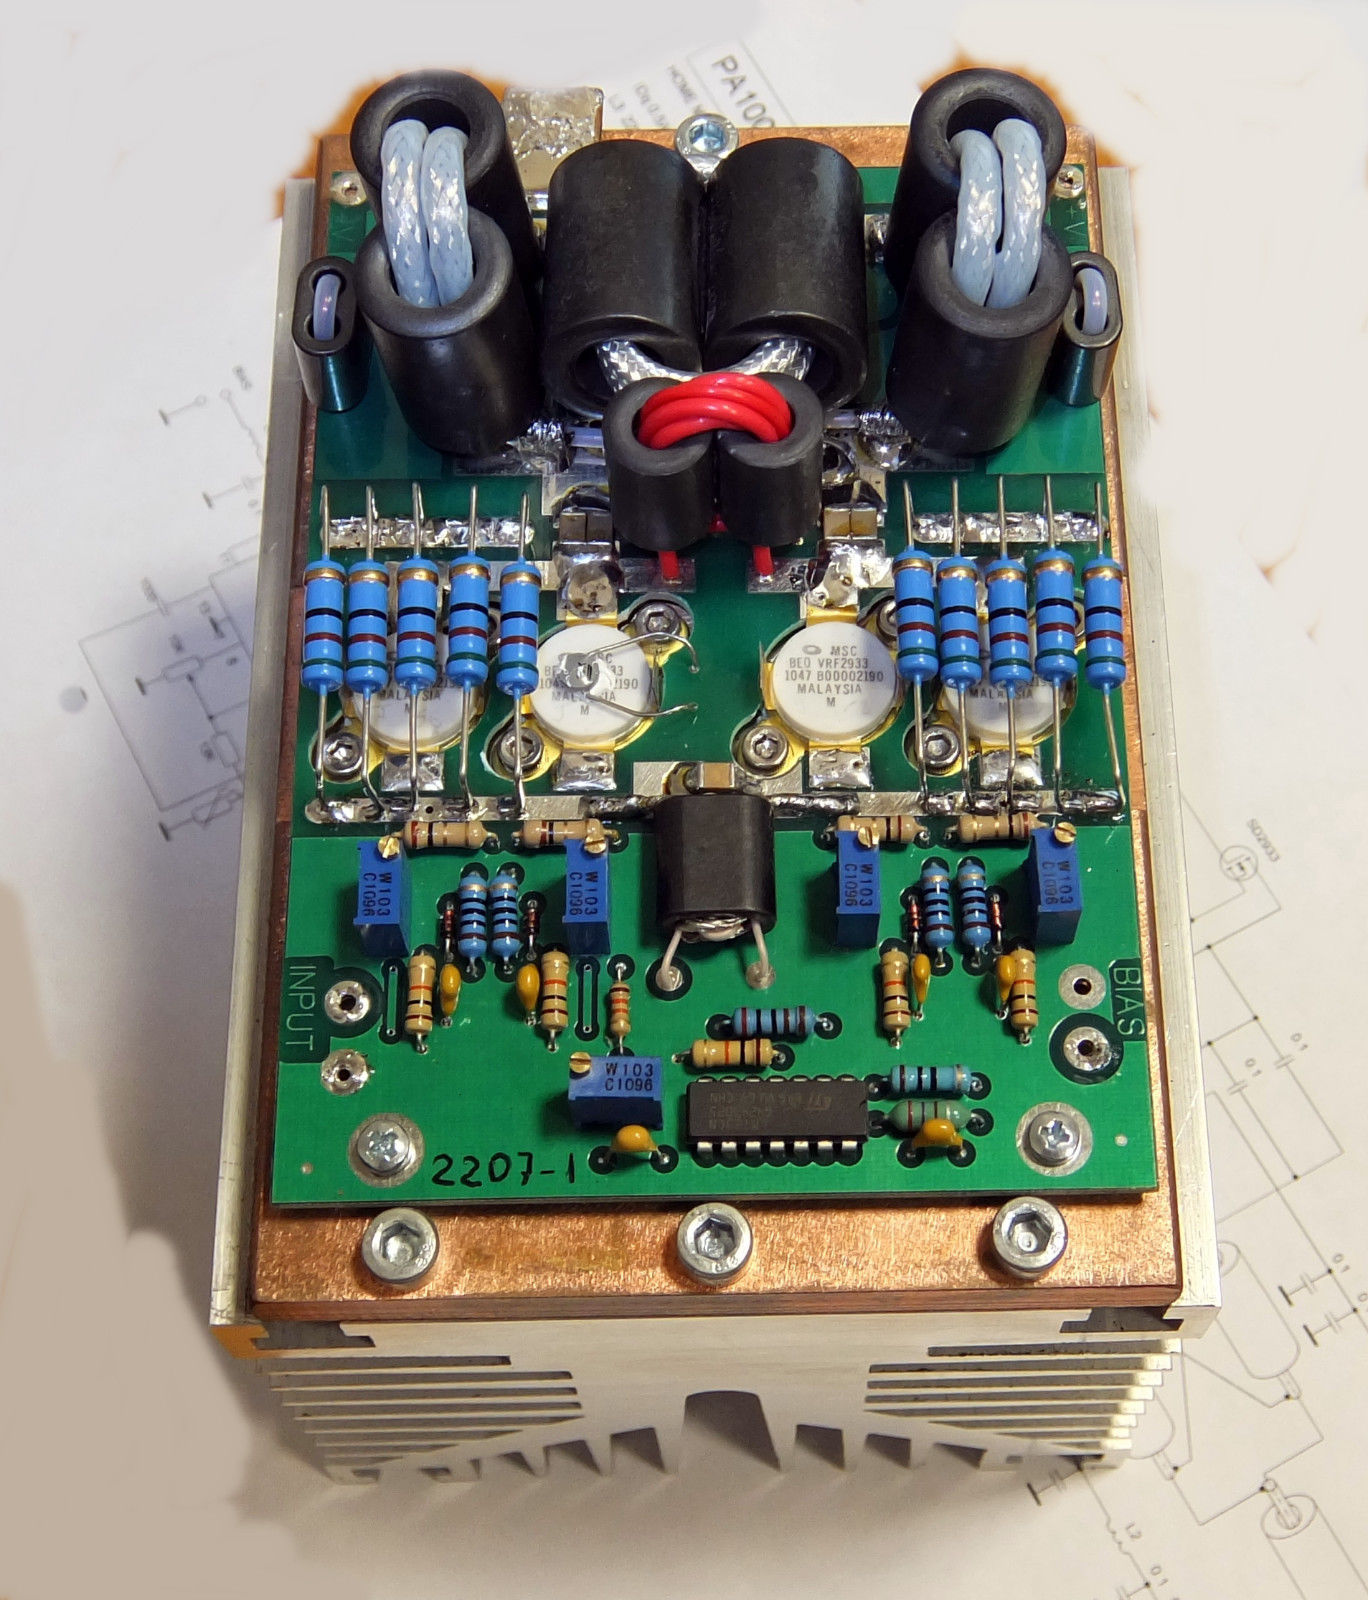 PA1000W SSB/CW 1.8-30 MHz with copper plate and aluminum heatsink